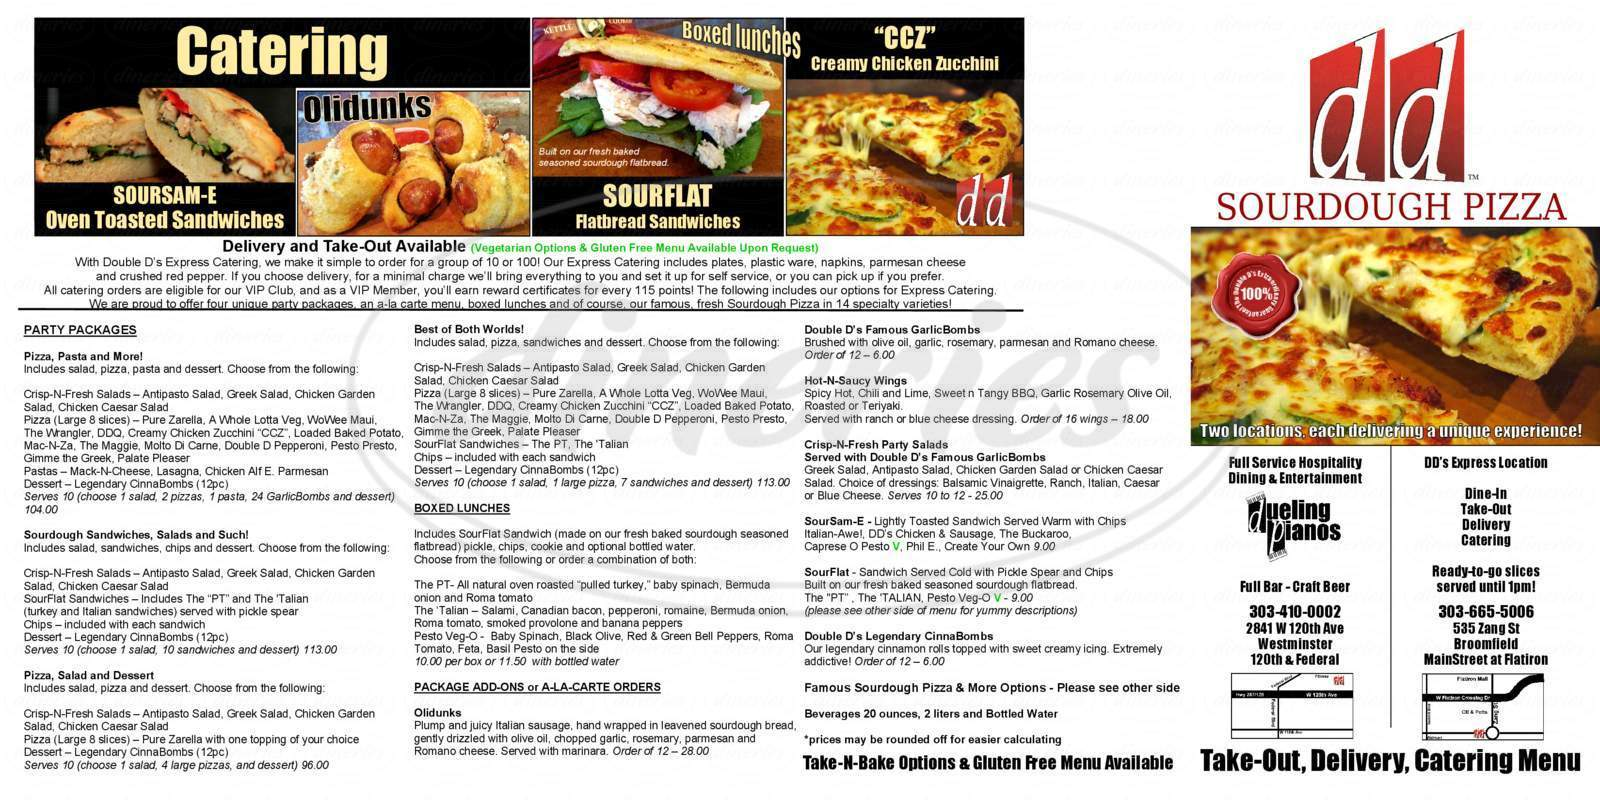 menu for Double D's Sourdough Pizza